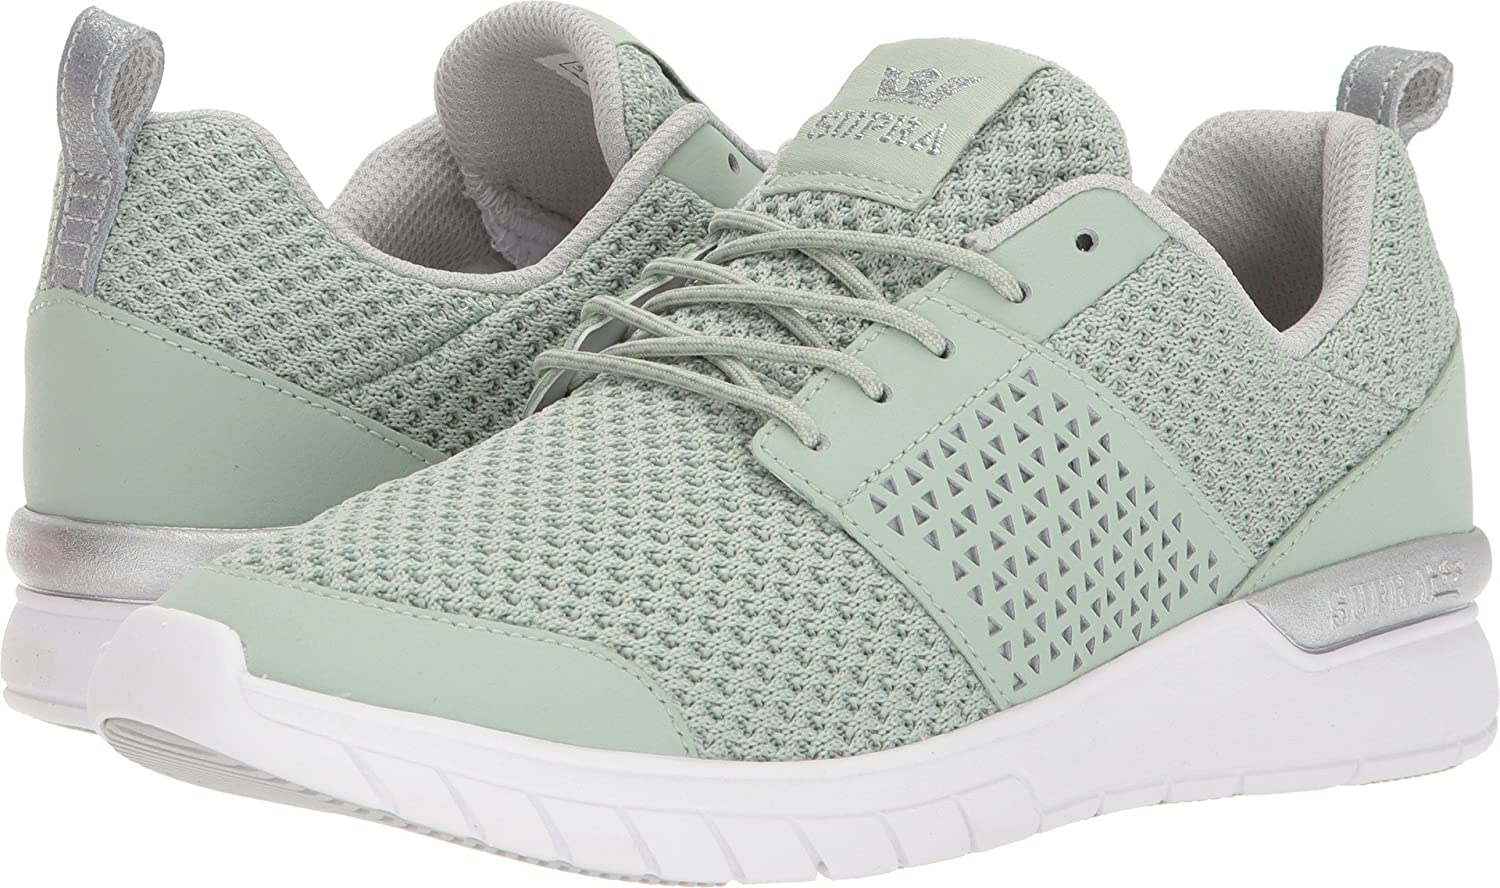 Supra Women's Scissor '18 Shoes B074KKTBMW 7.5 M US|Smoke Green/Silver-white